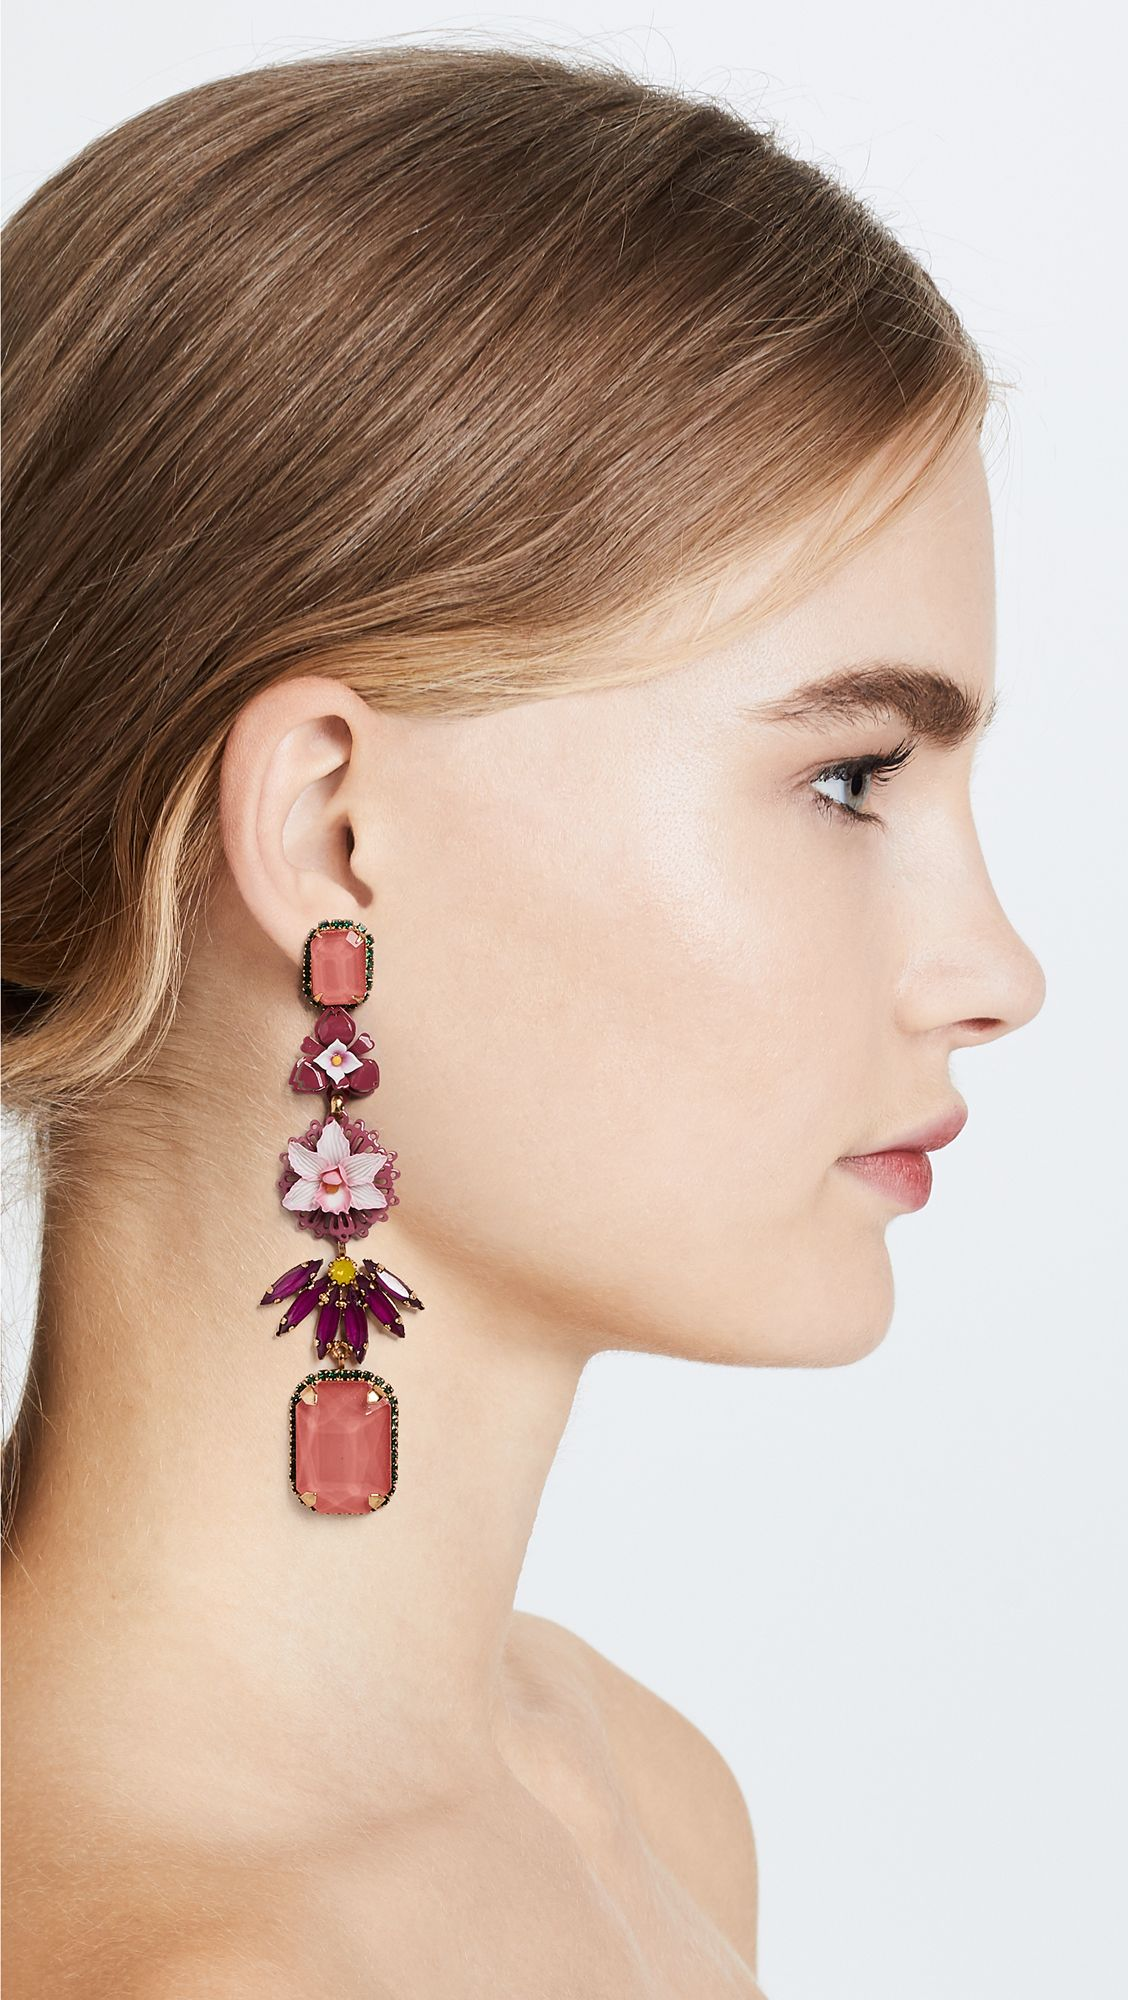 Shoulder Duster Earrings Are the Fall Fashion Week Trend to TryNow